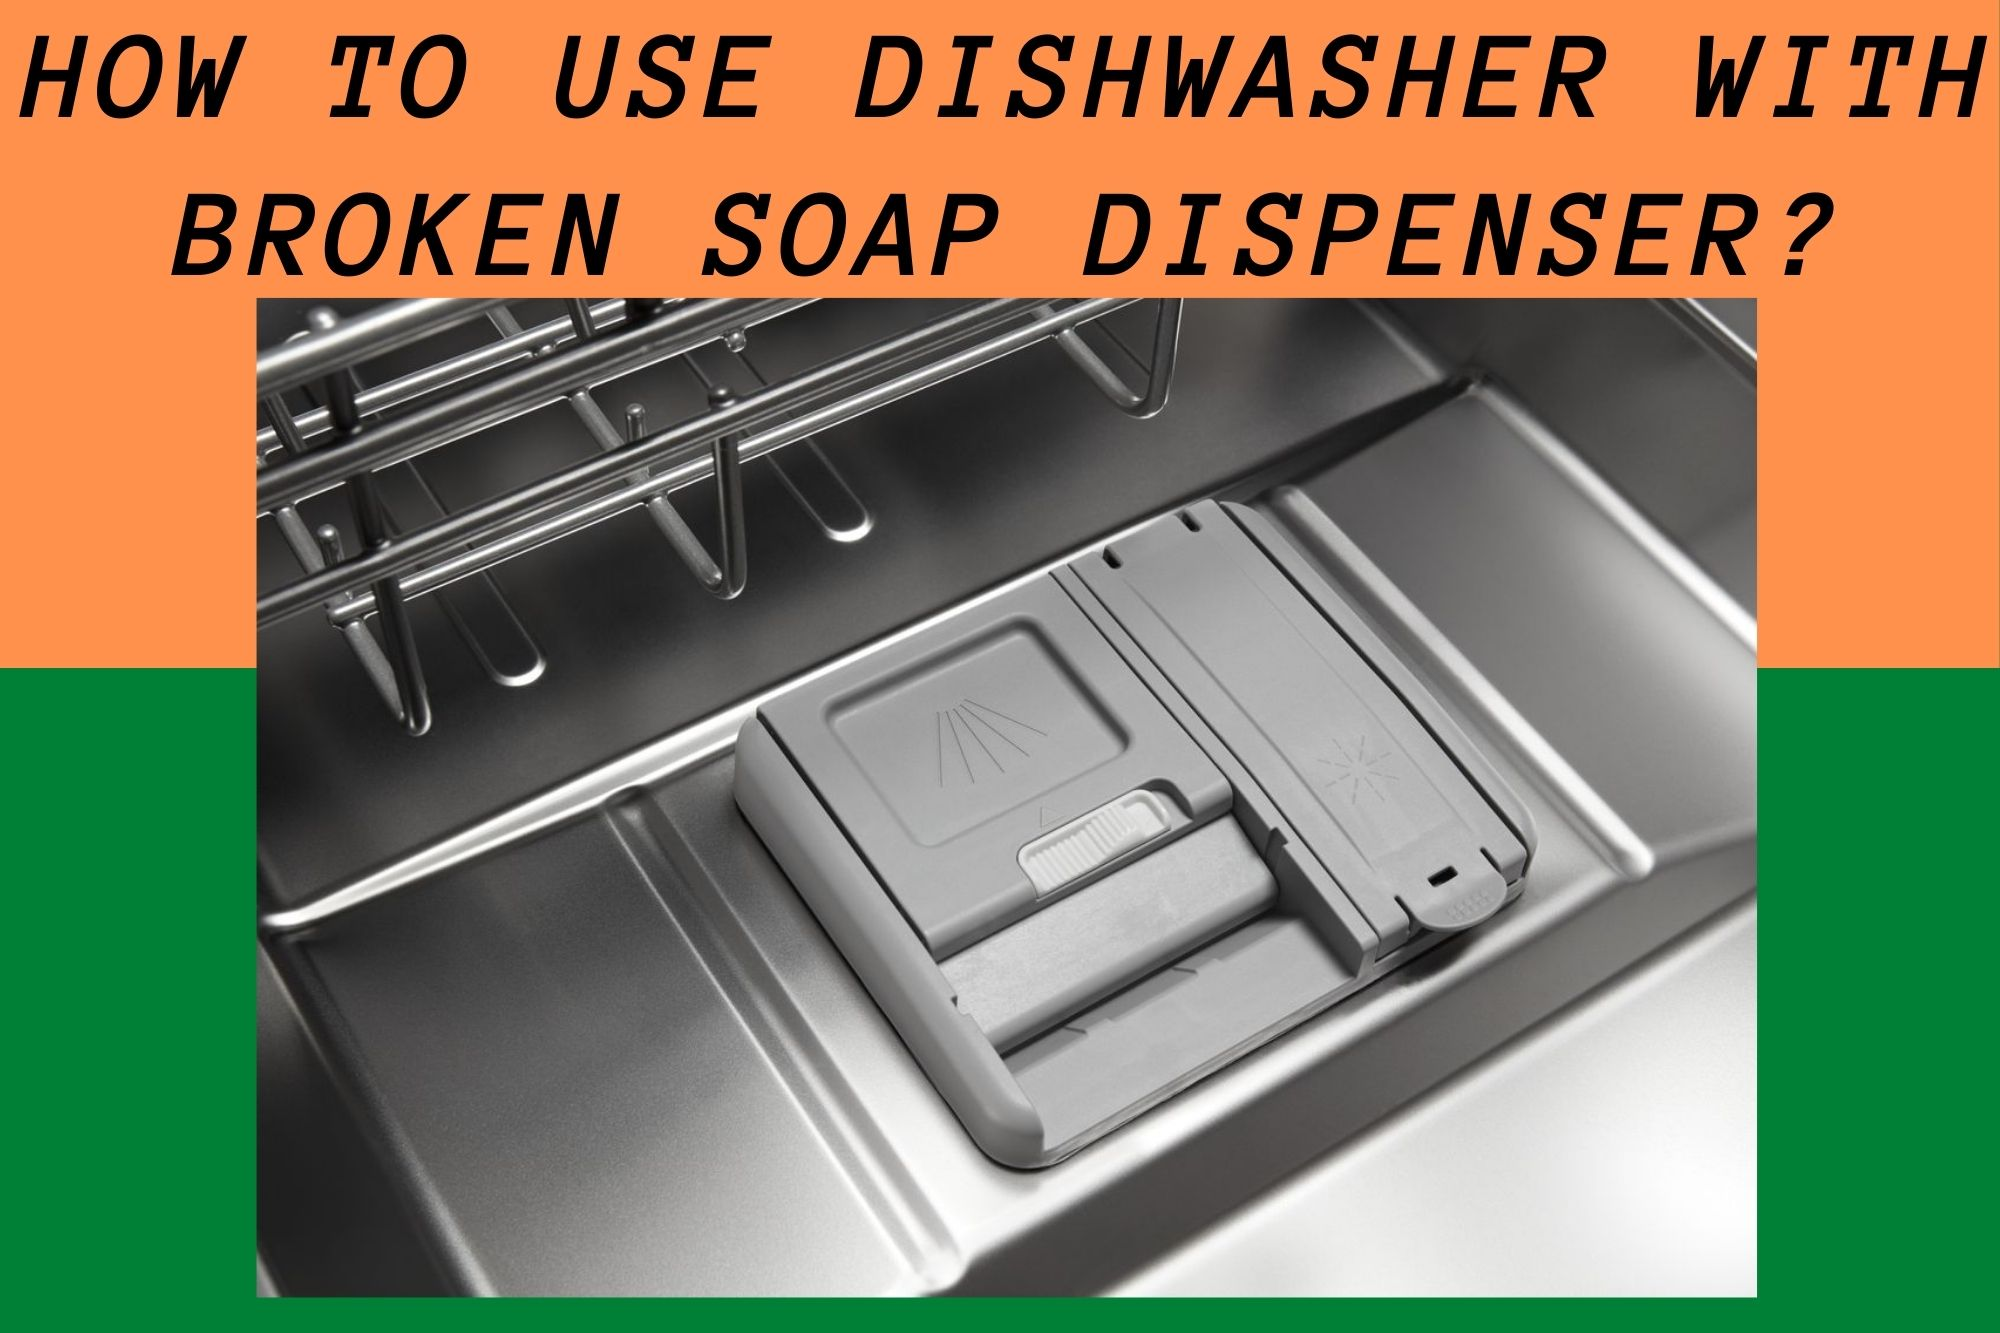 How To Use Dishwasher With Broken Soap Dispenser?